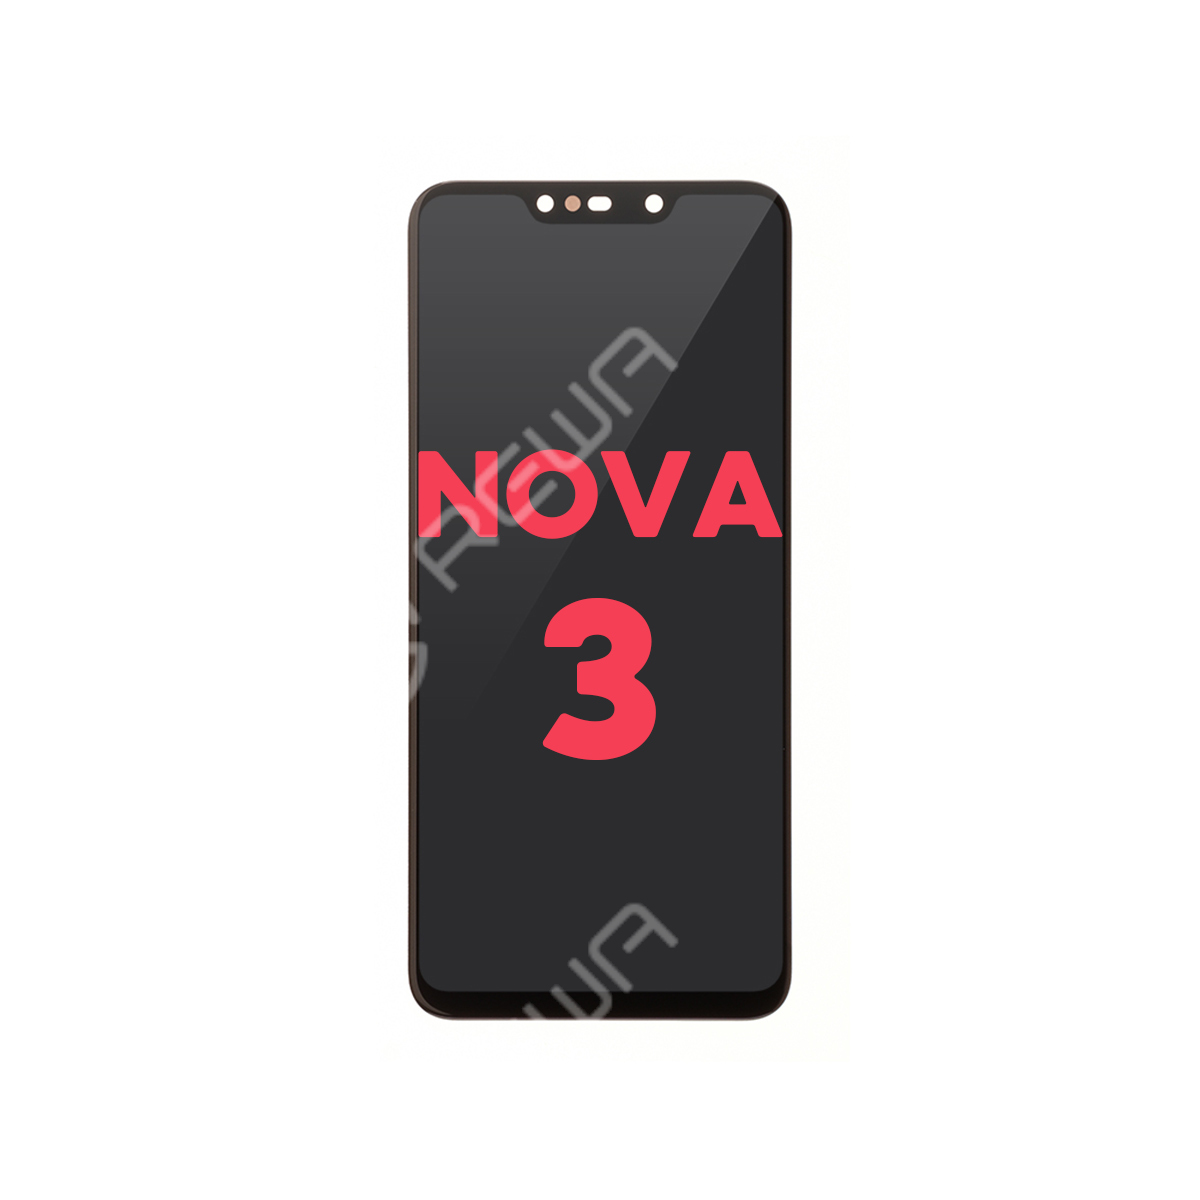 For Huawei Nova 3 LCD Display and Touch Screen Digitizer Assembly Replacement